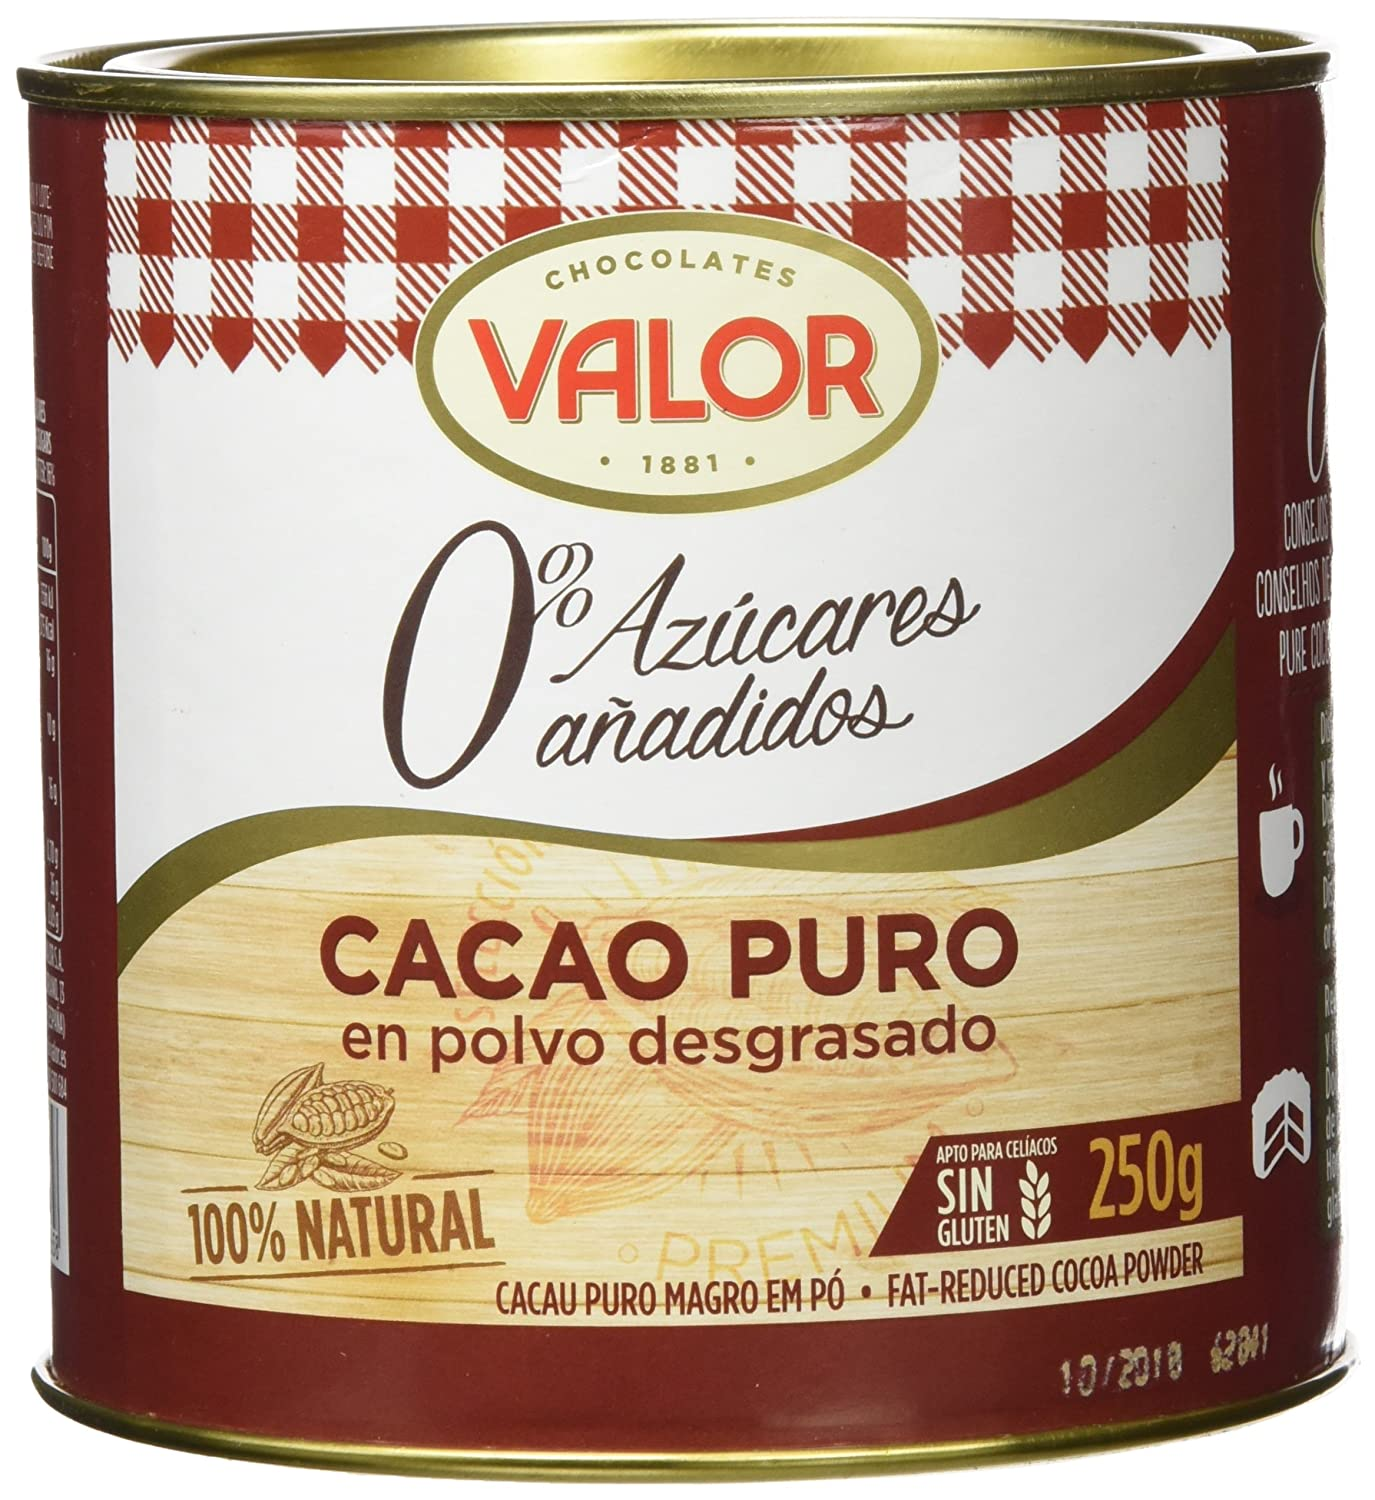 Chocolates Valor - Cacao Puro